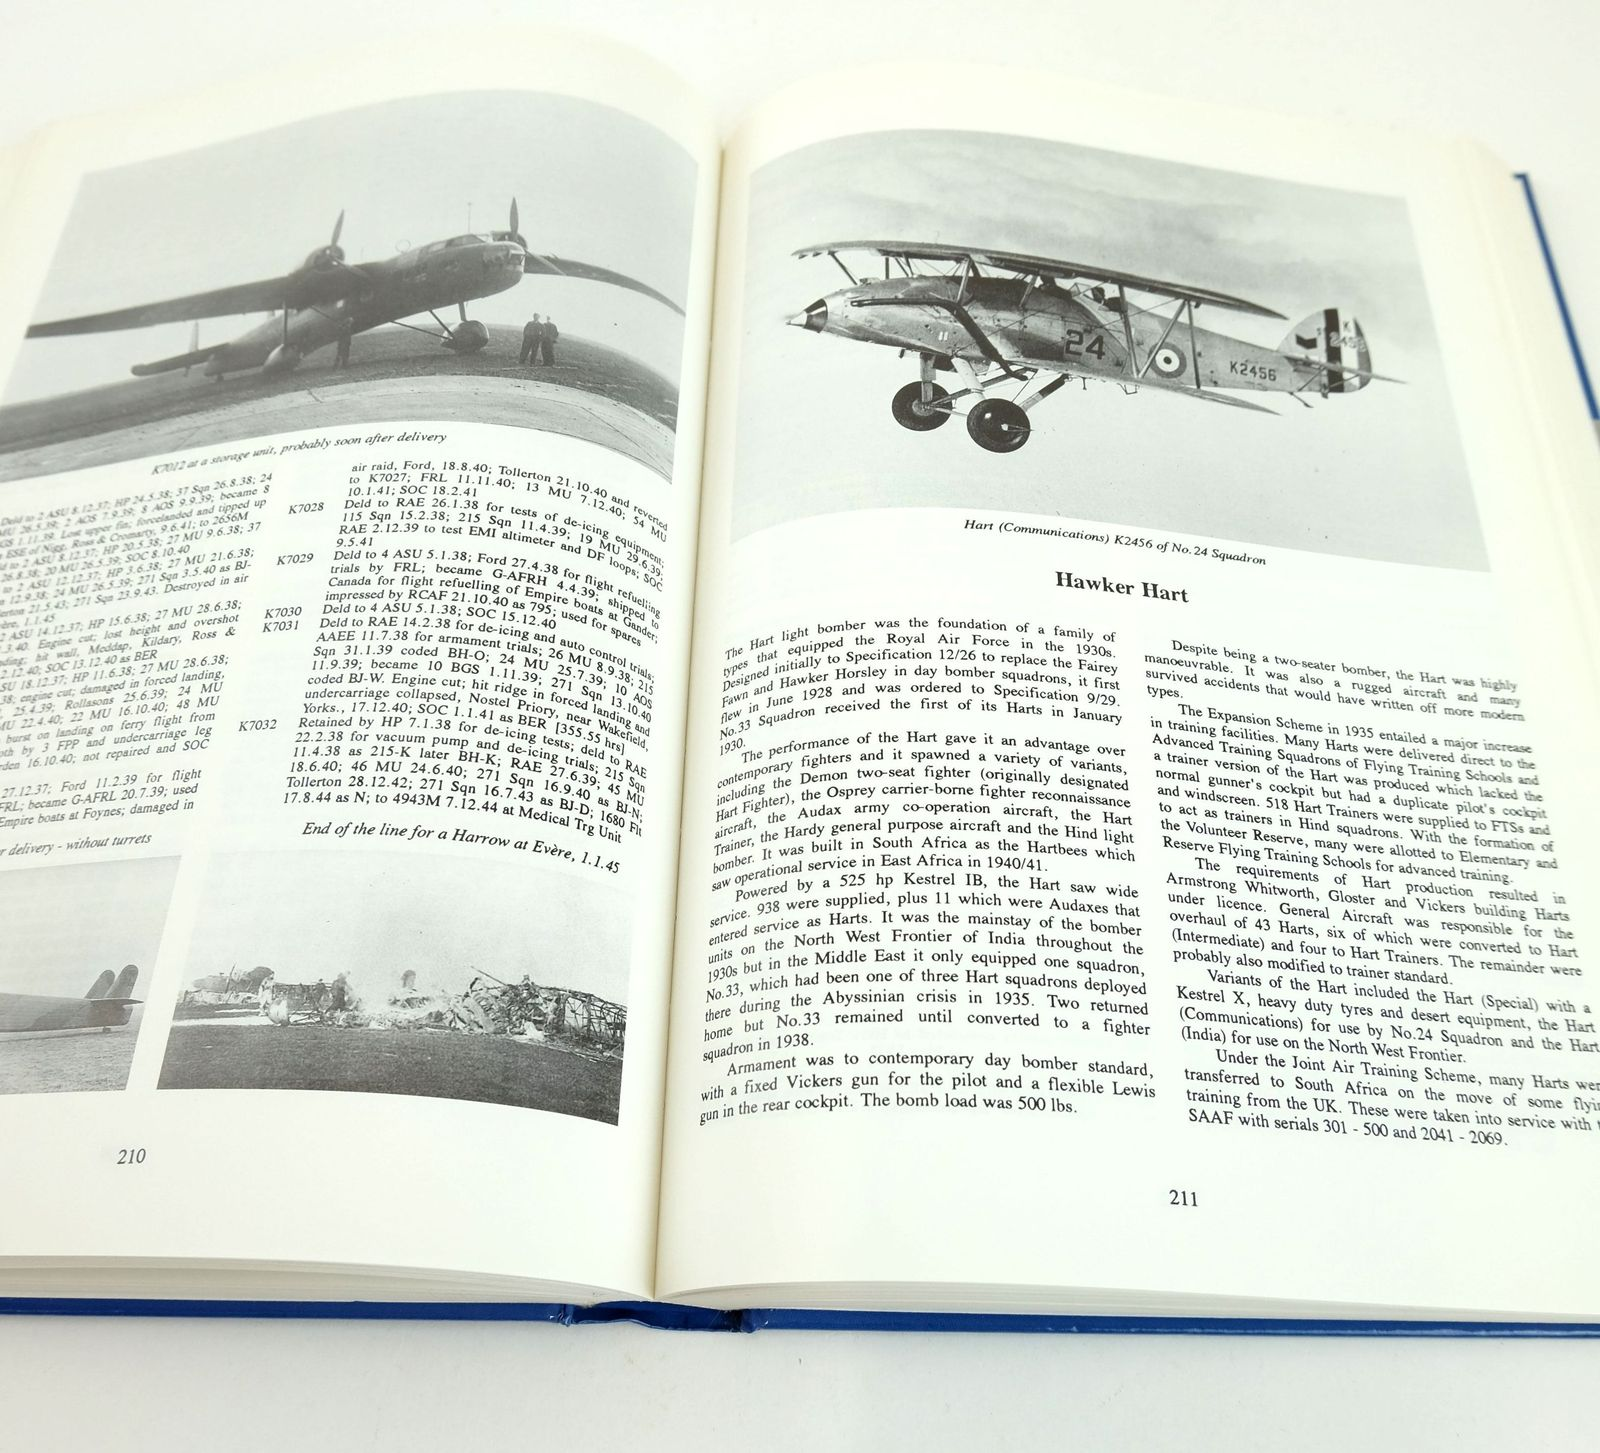 Photo of THE K FILE: THE ROYAL AIR FORCE OF THE 1930S written by Halley, James J. published by Air-Britain (Historians) Ltd. (STOCK CODE: 1819024)  for sale by Stella & Rose's Books